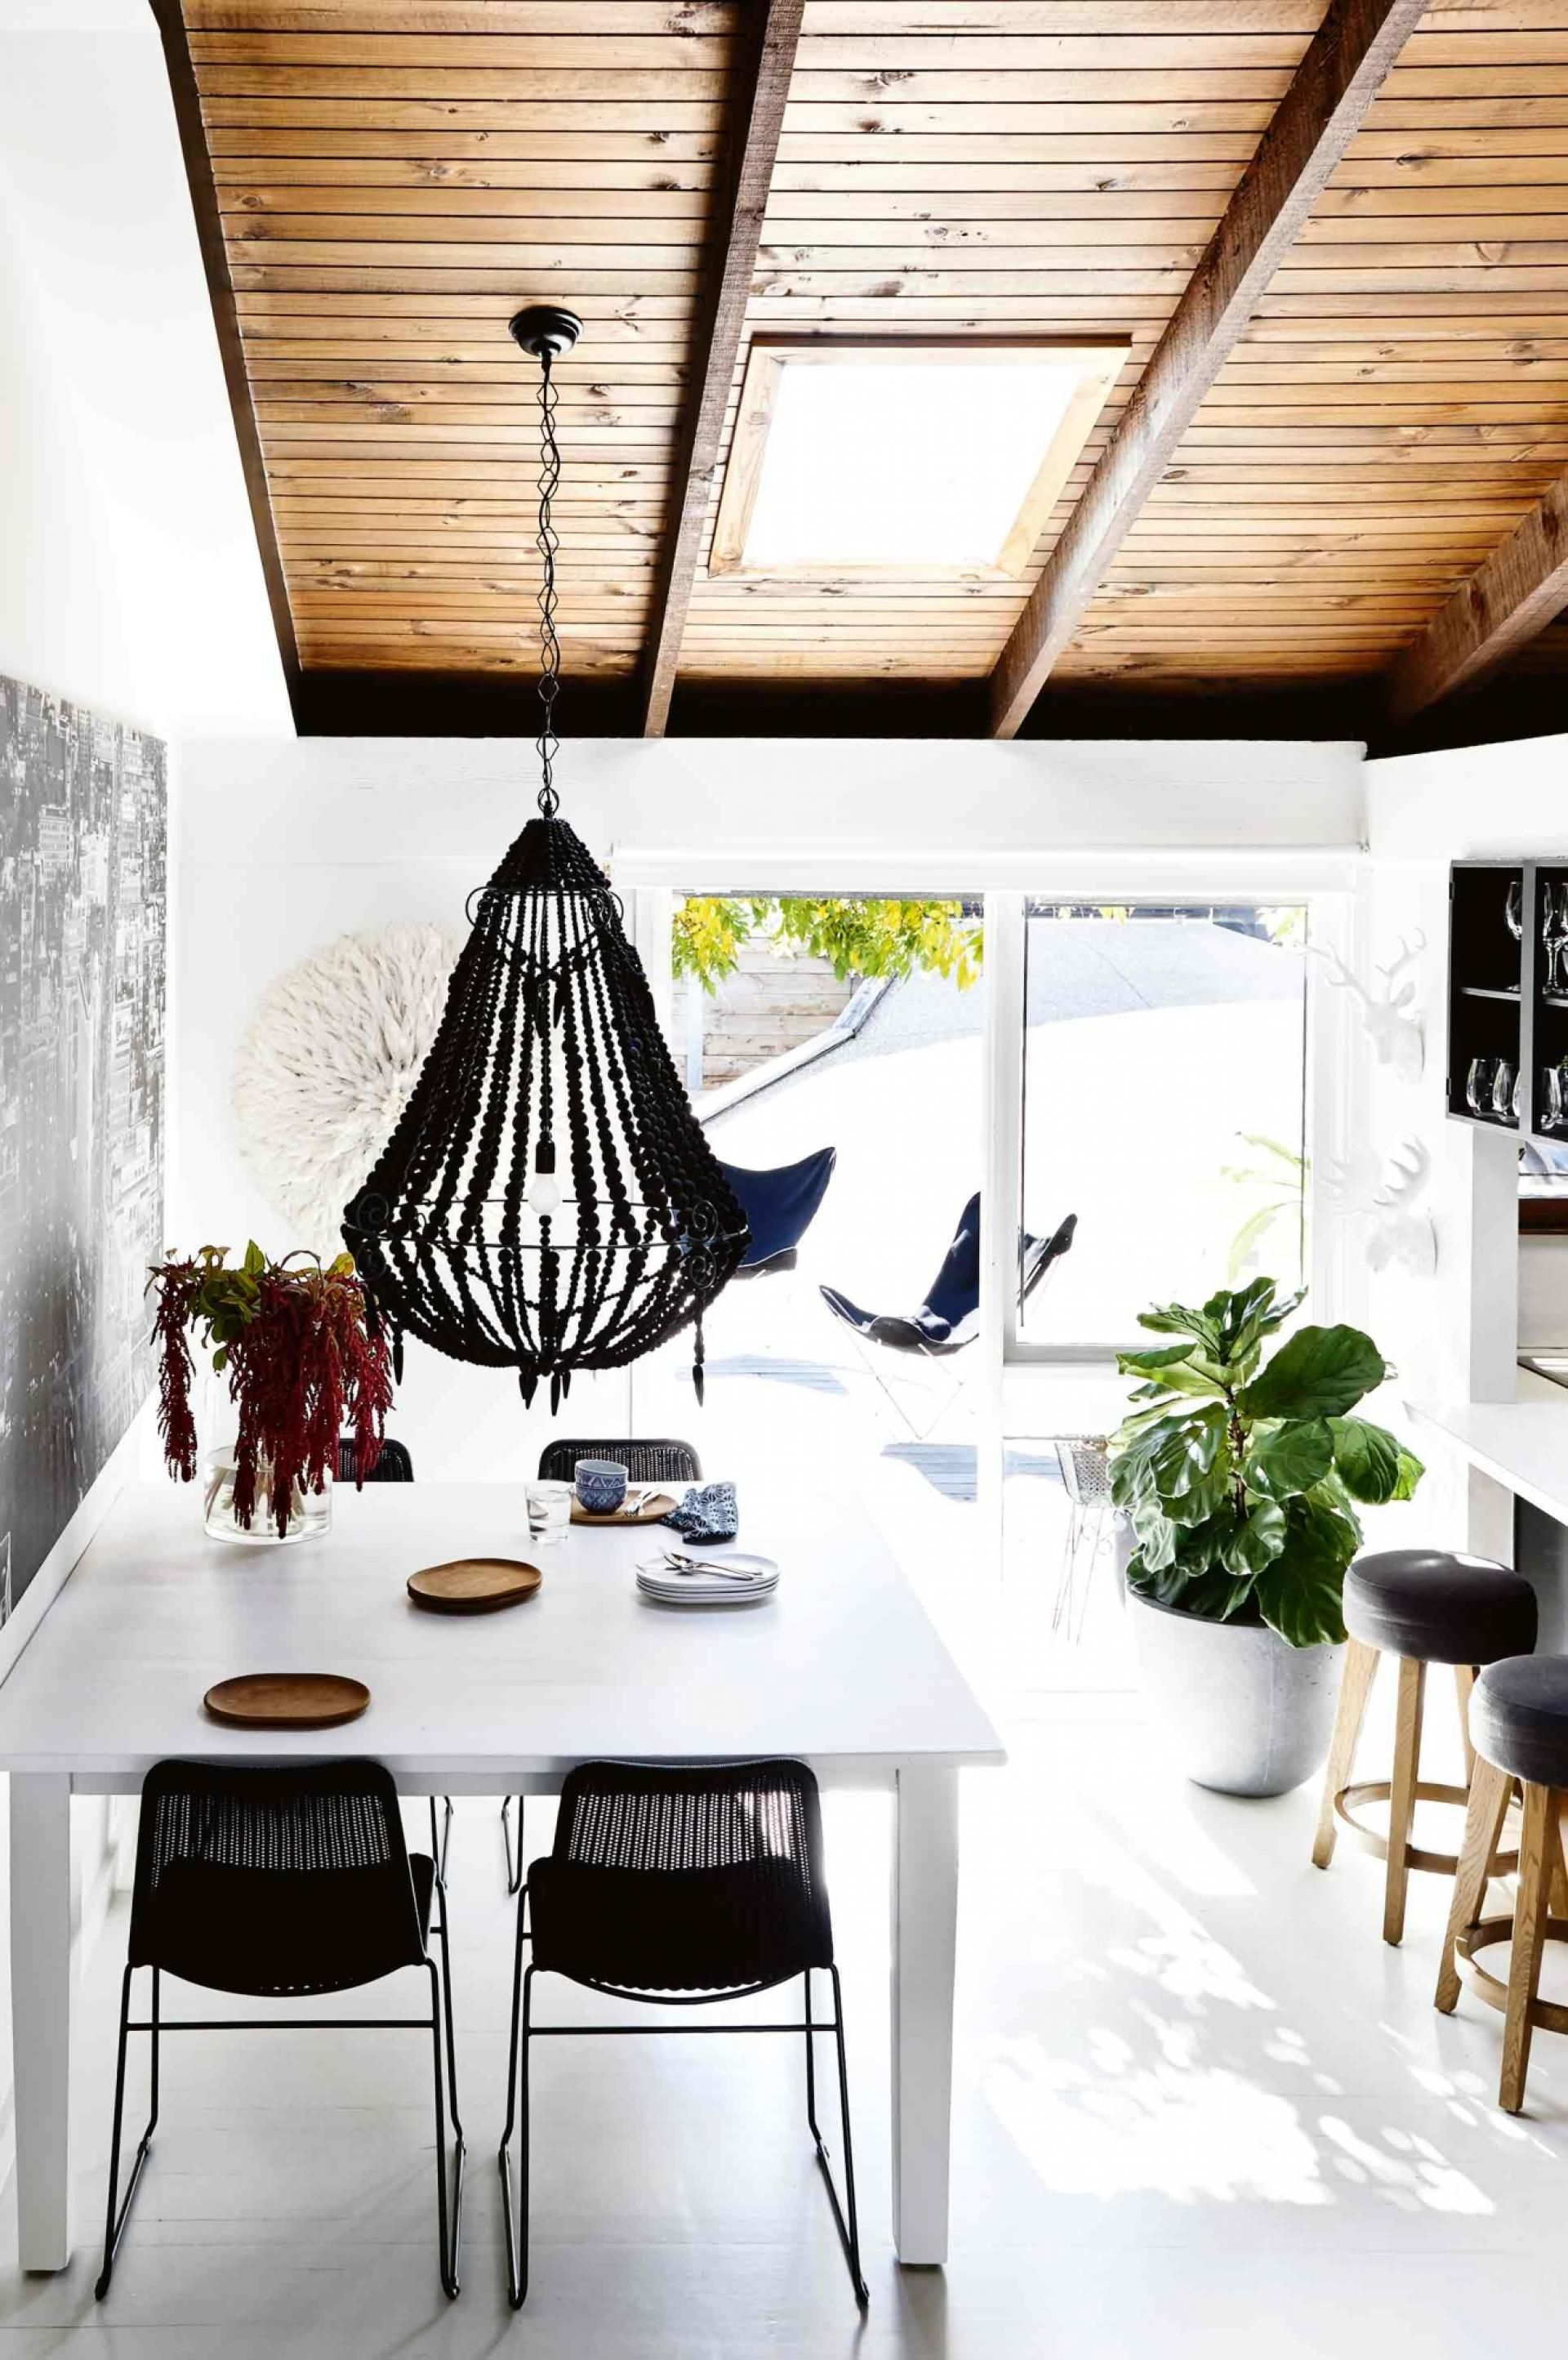 Pin by Catriona W on Kitchen and Dining room | Pinterest | Resort ...